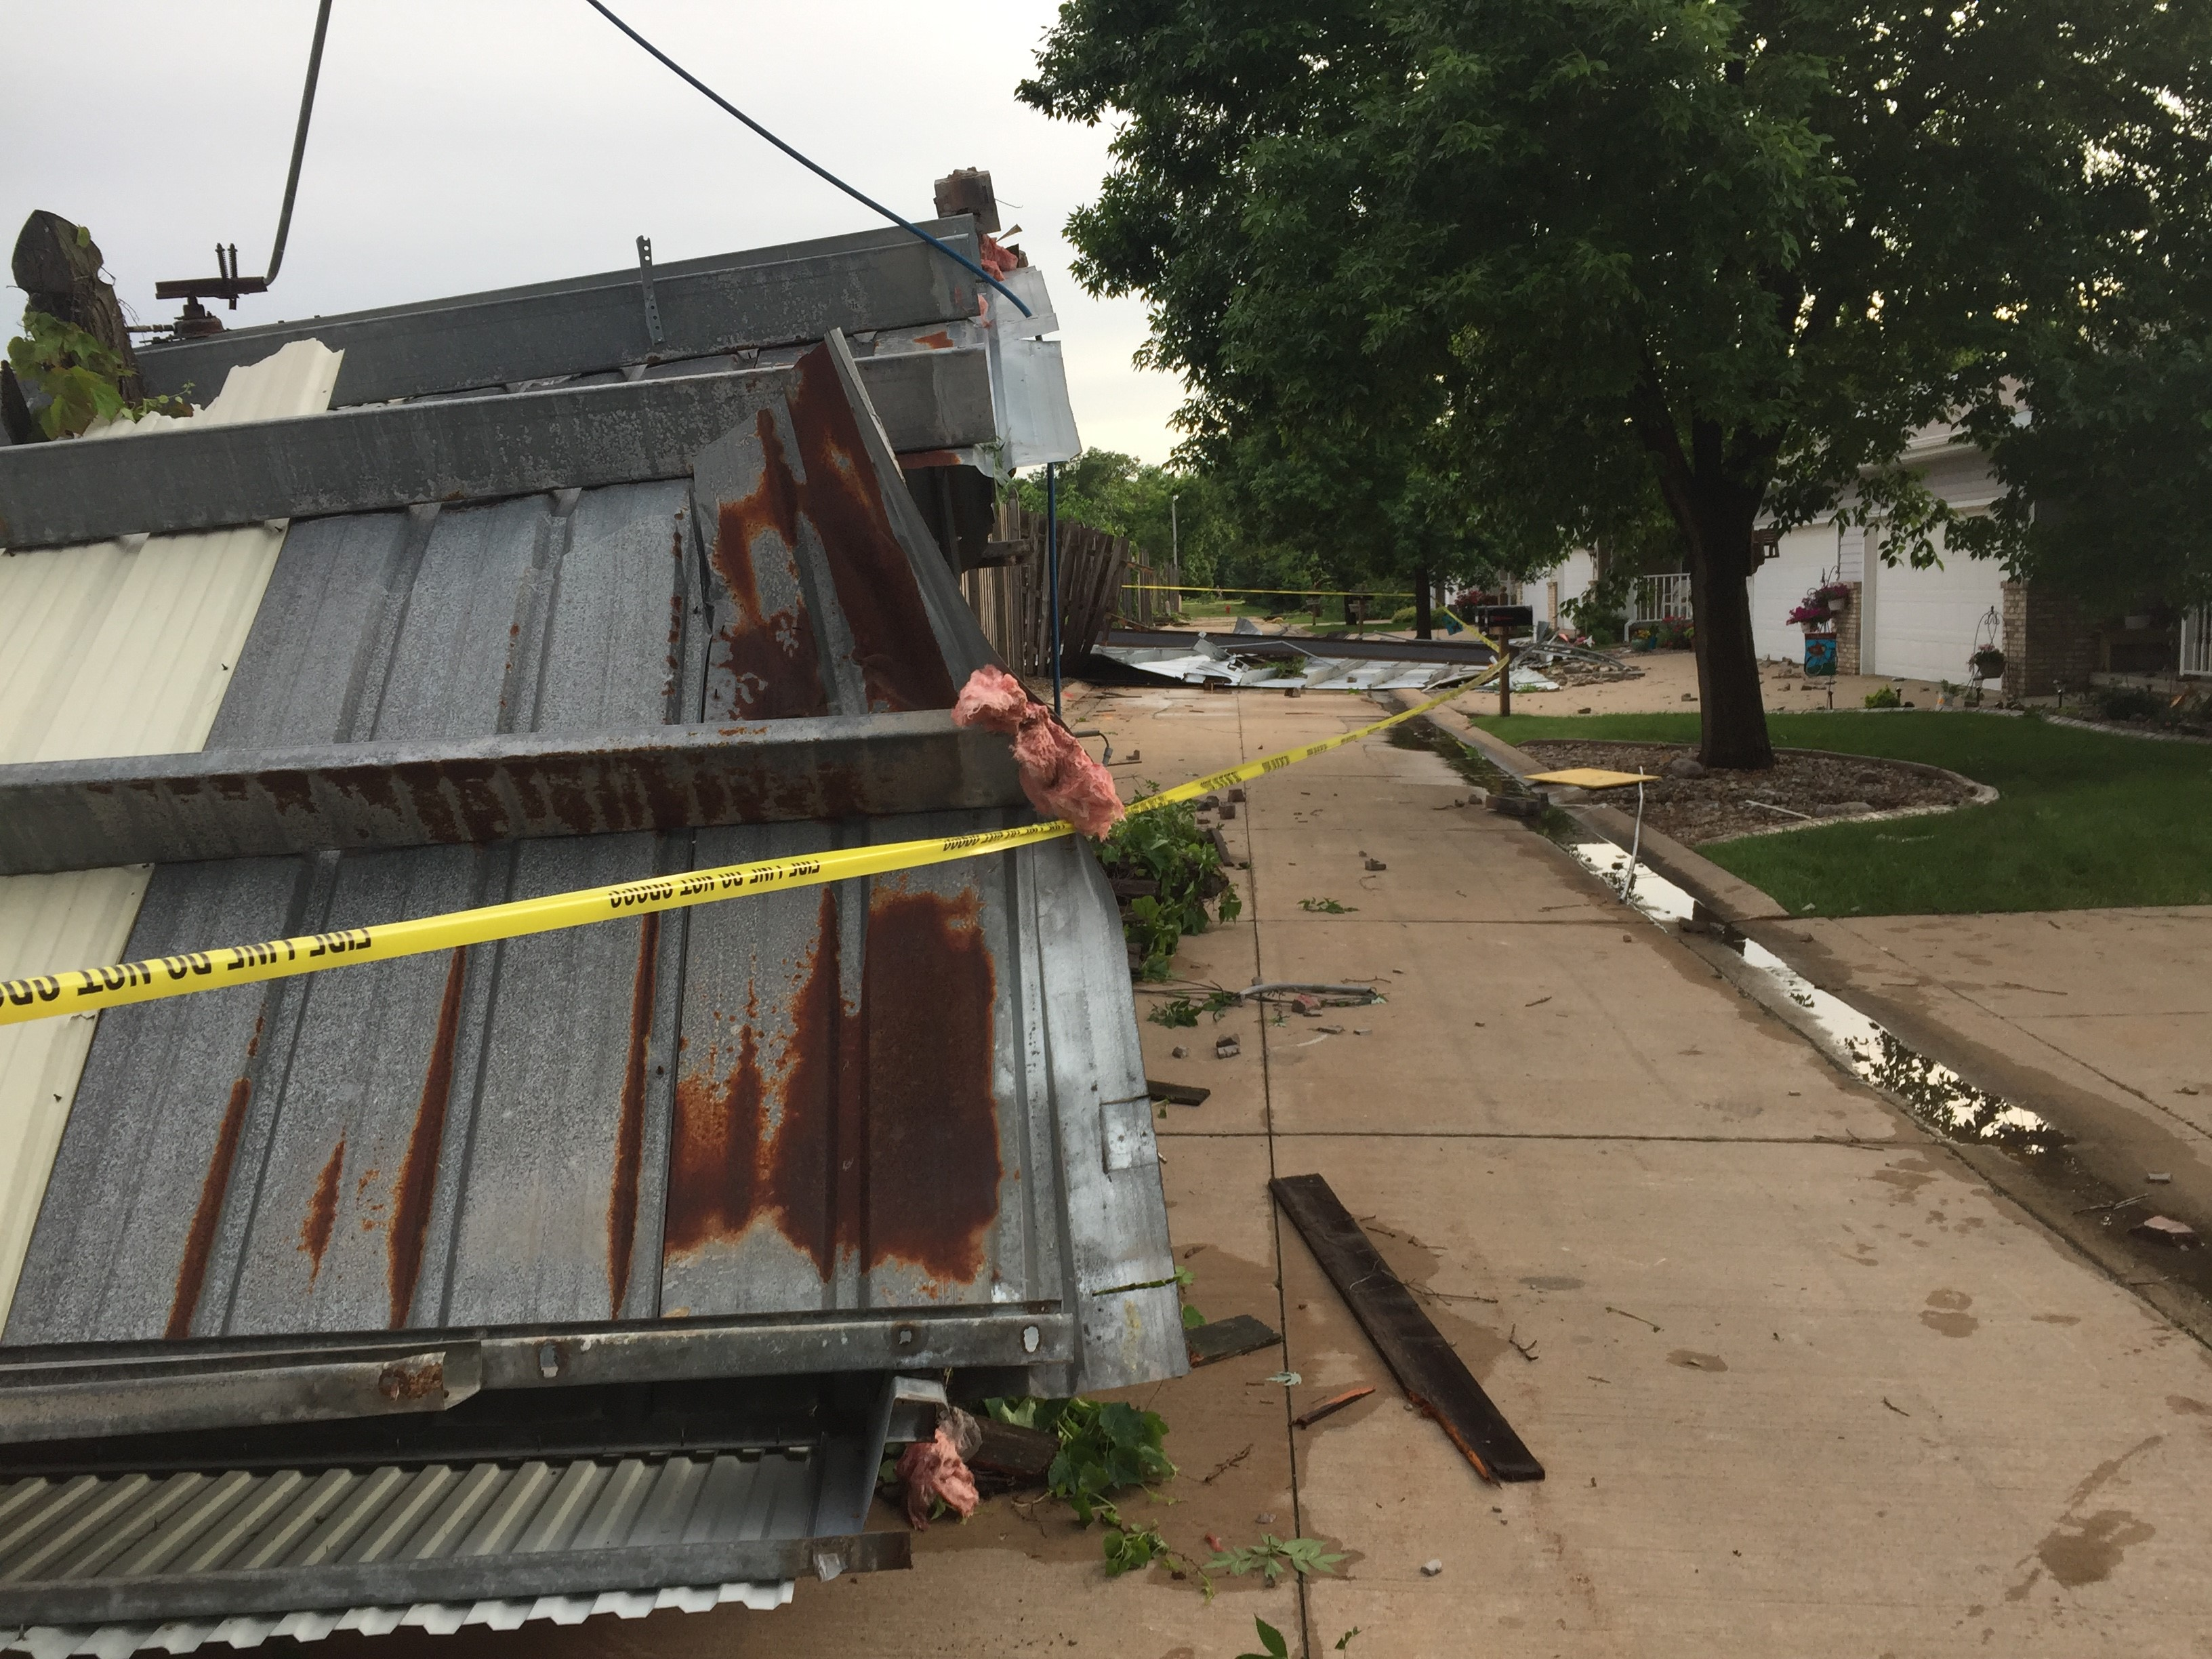 The roof of the Best Wash in Kimberly is resting on a nearby home after storms moved through, June 14, 2017. (WLUK/Chris Bourassa)